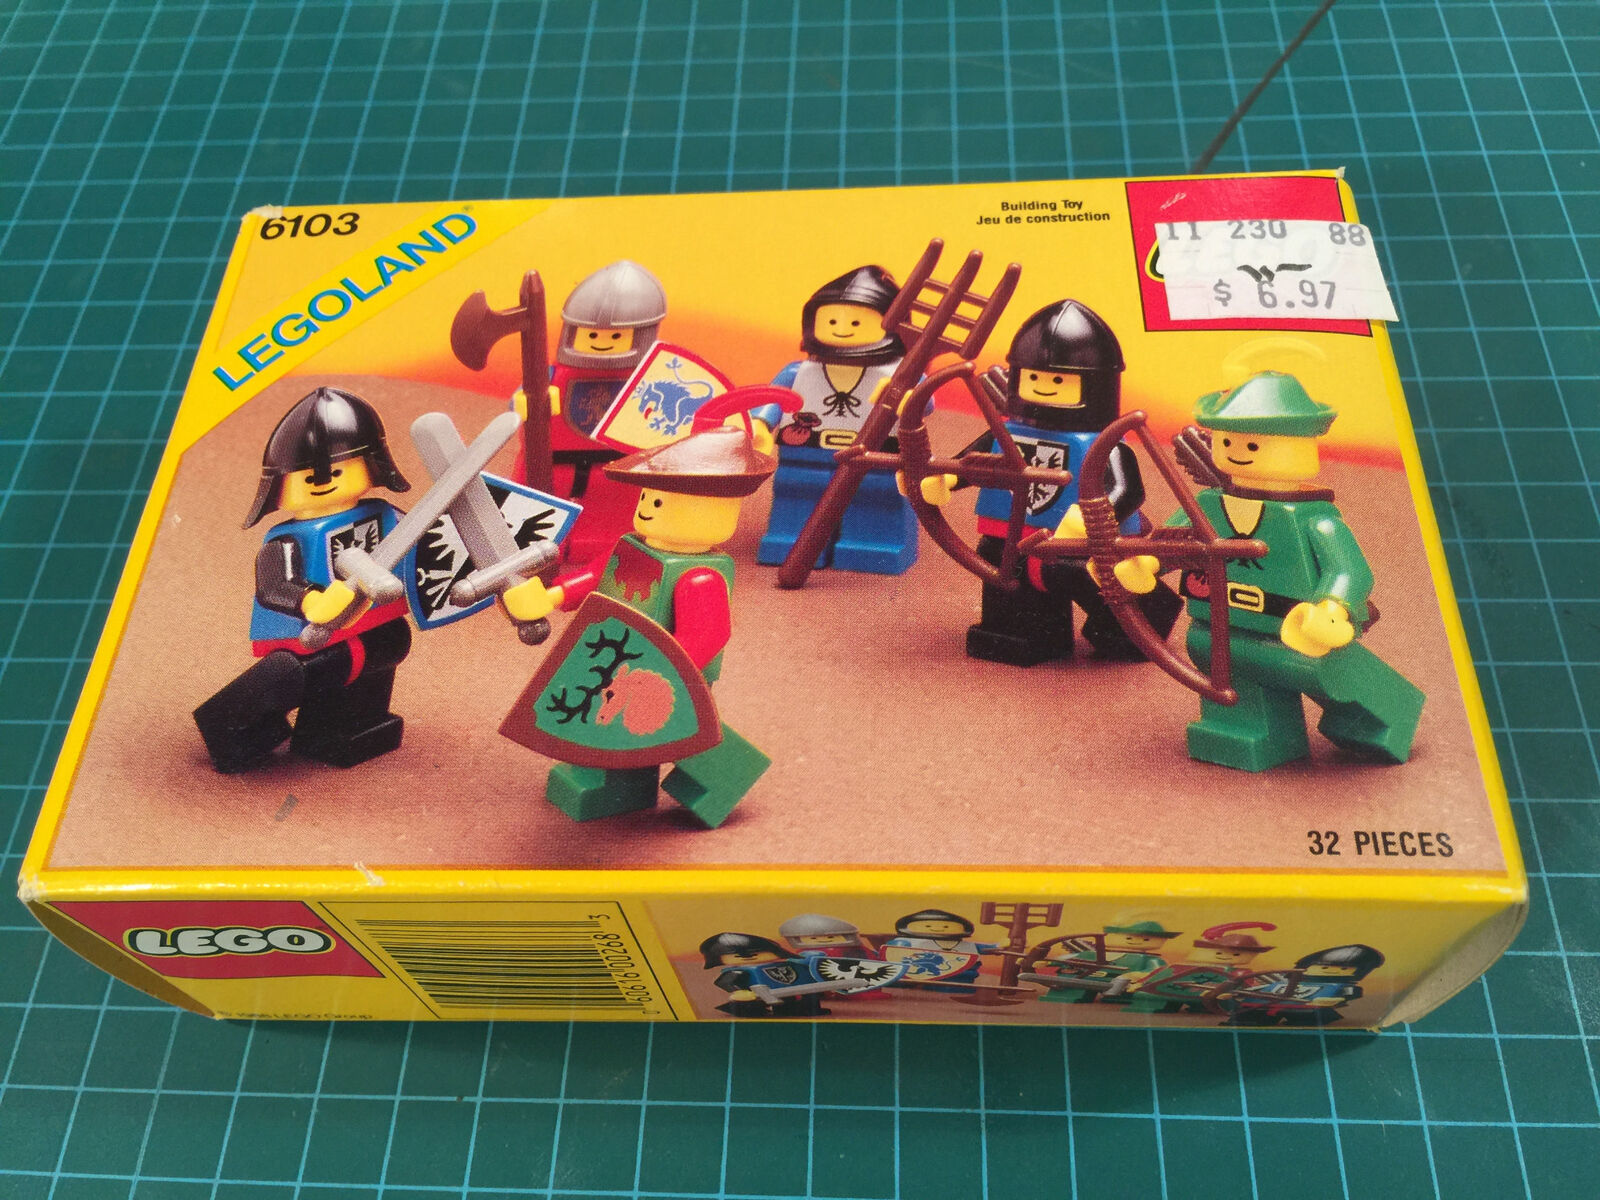 Lego 6103 Castle Knights Minifigures LEGOLAND Knights 1988 MINT UNOPENED UNOPENED MINT 929e98